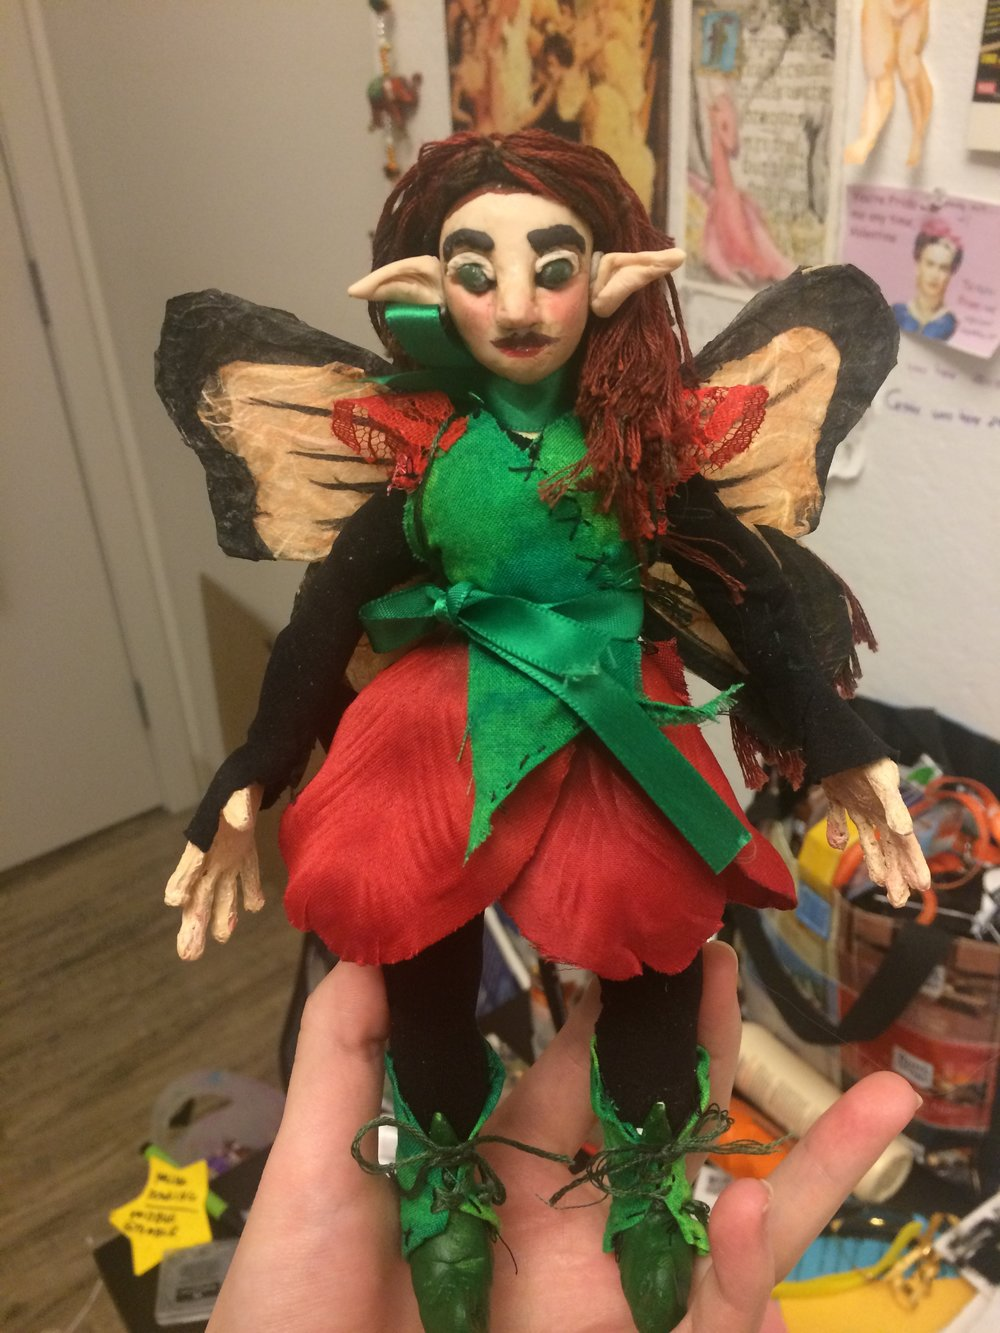 The puppet is 7 inches tall, with embroidery floss hair and a sculpey face. Her eyebrows and eyelids were left as soft clay to be animated.